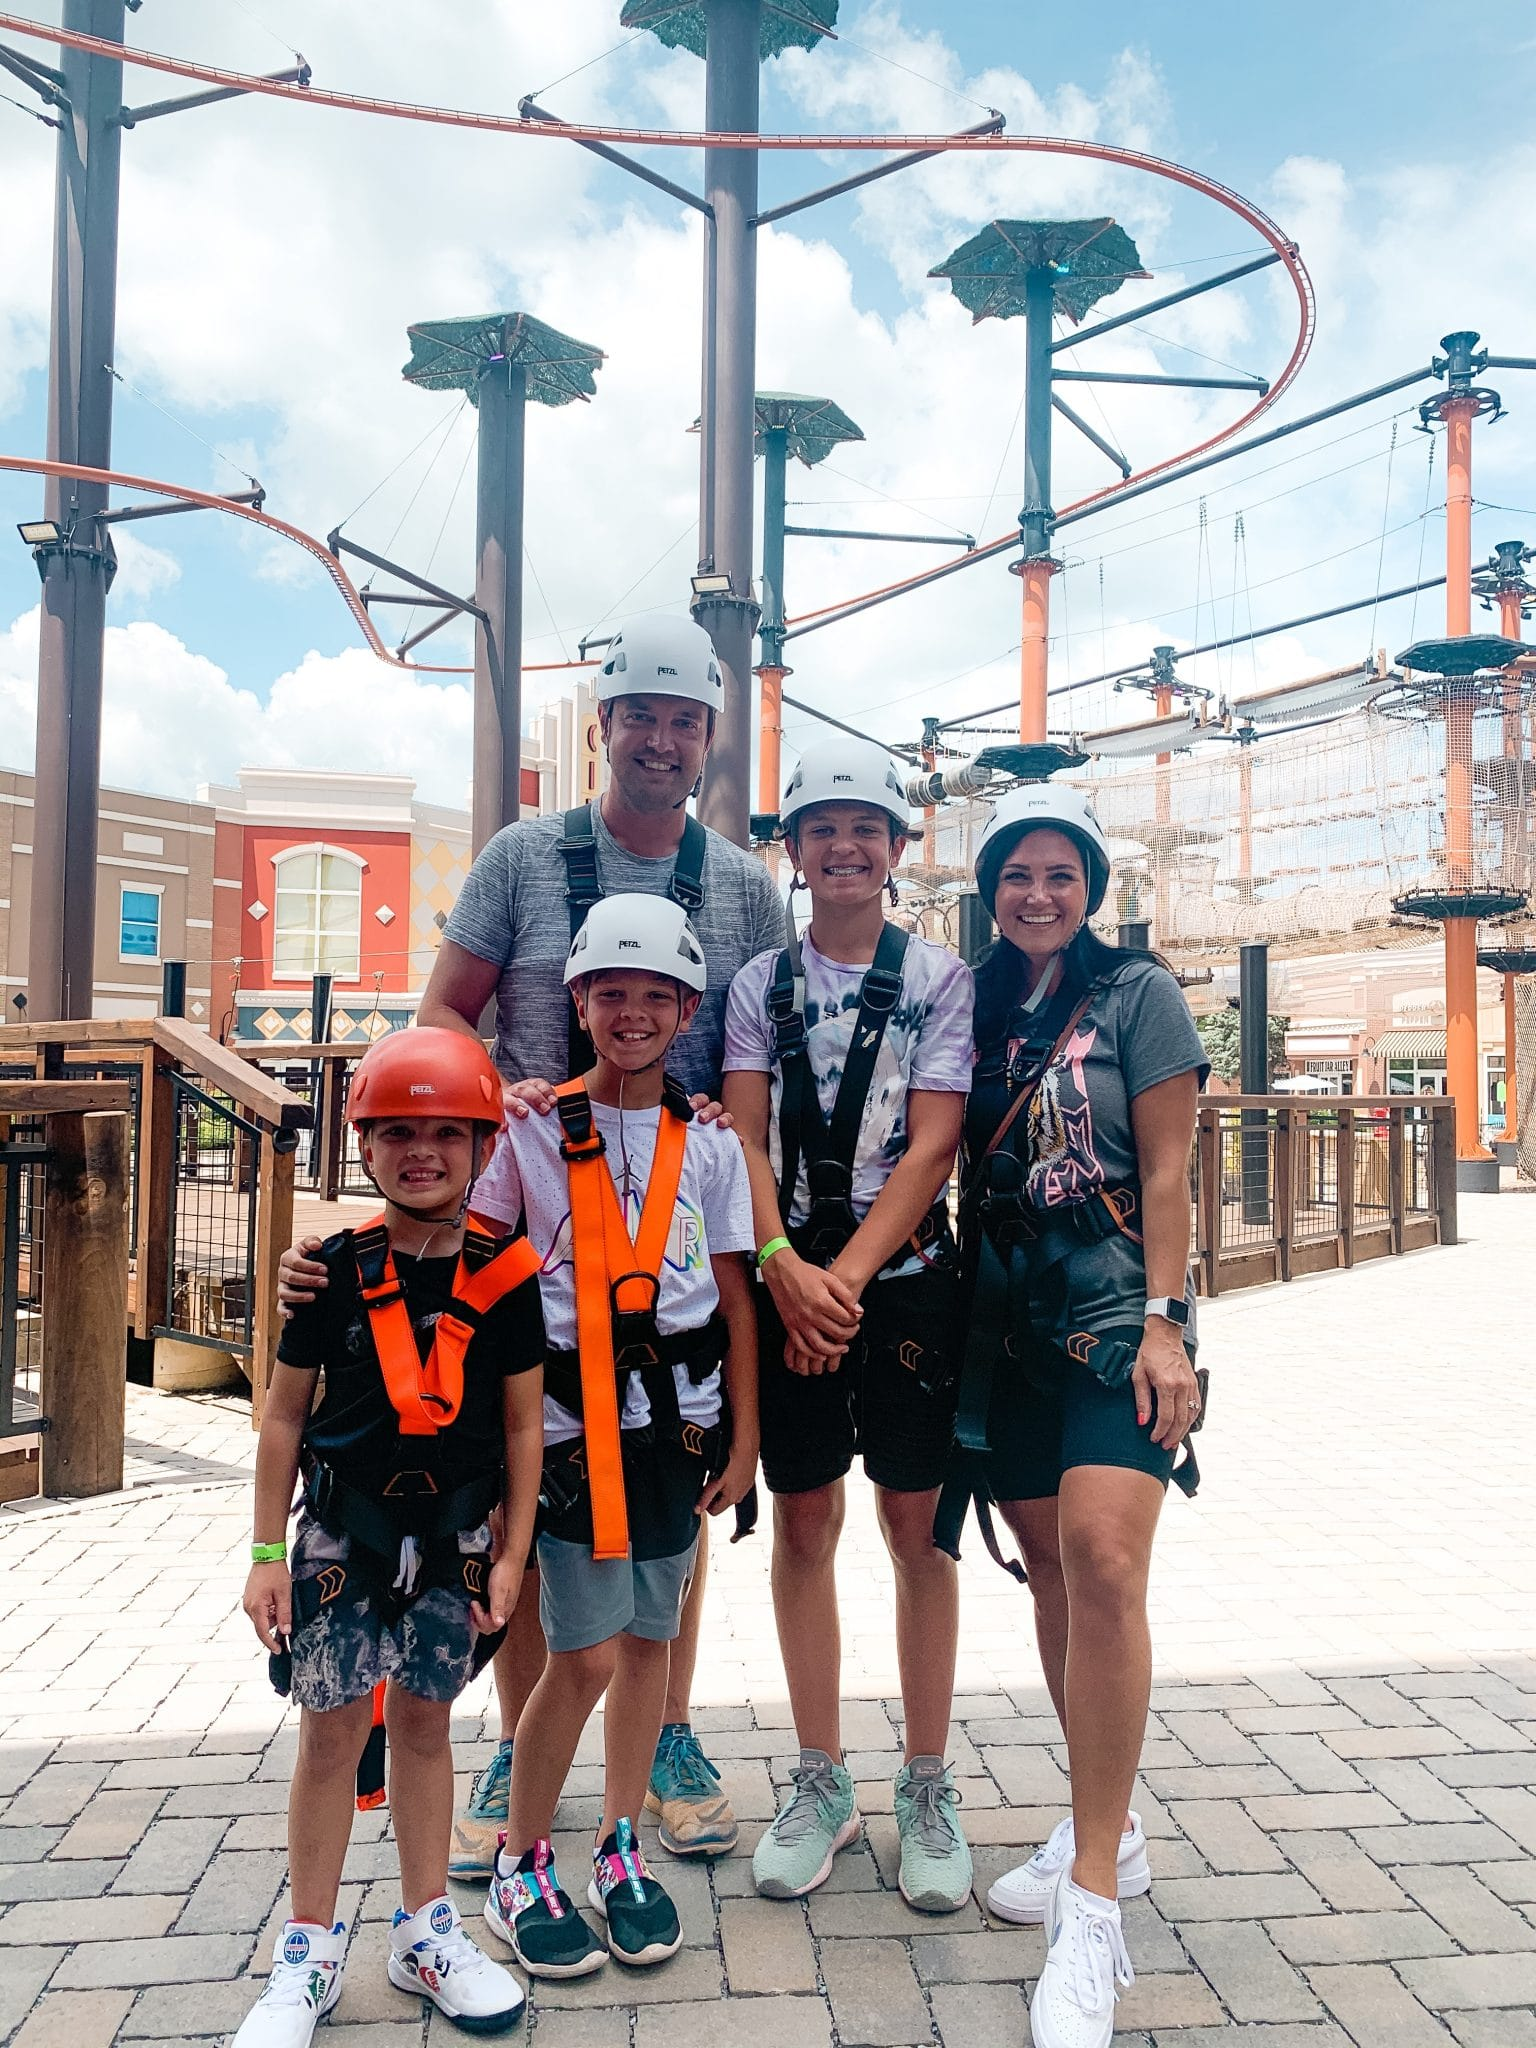 Paula Deen Lumberjack Feud, Pigeon Forge Family Travel Guide, Stilettos and Diapers